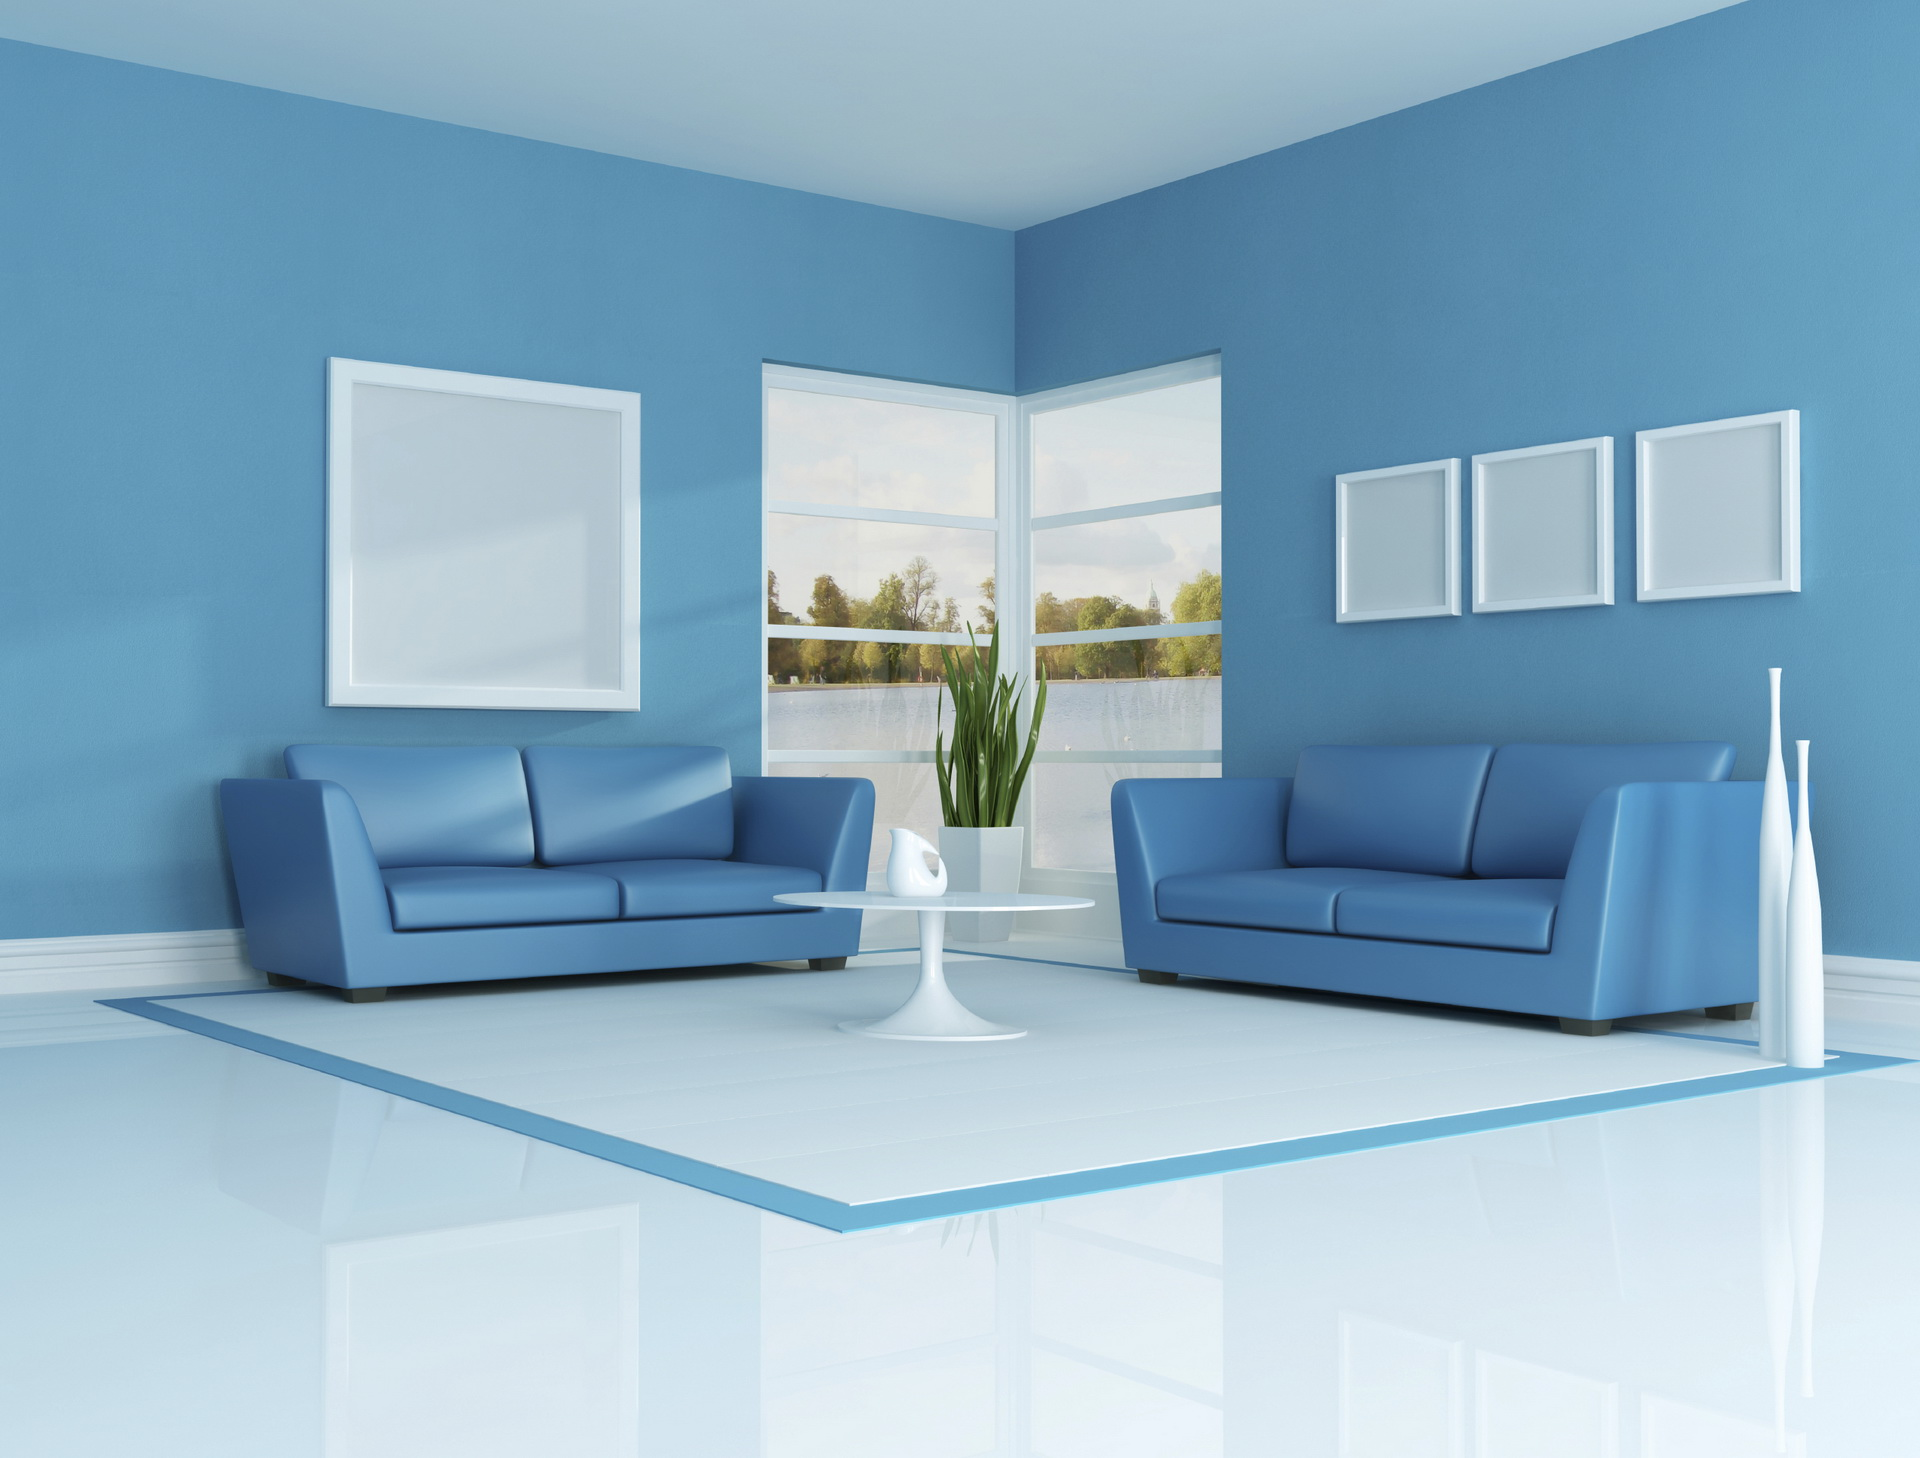 Asian paints colour shades blue 21 tips for wall for Best paint color for interior walls